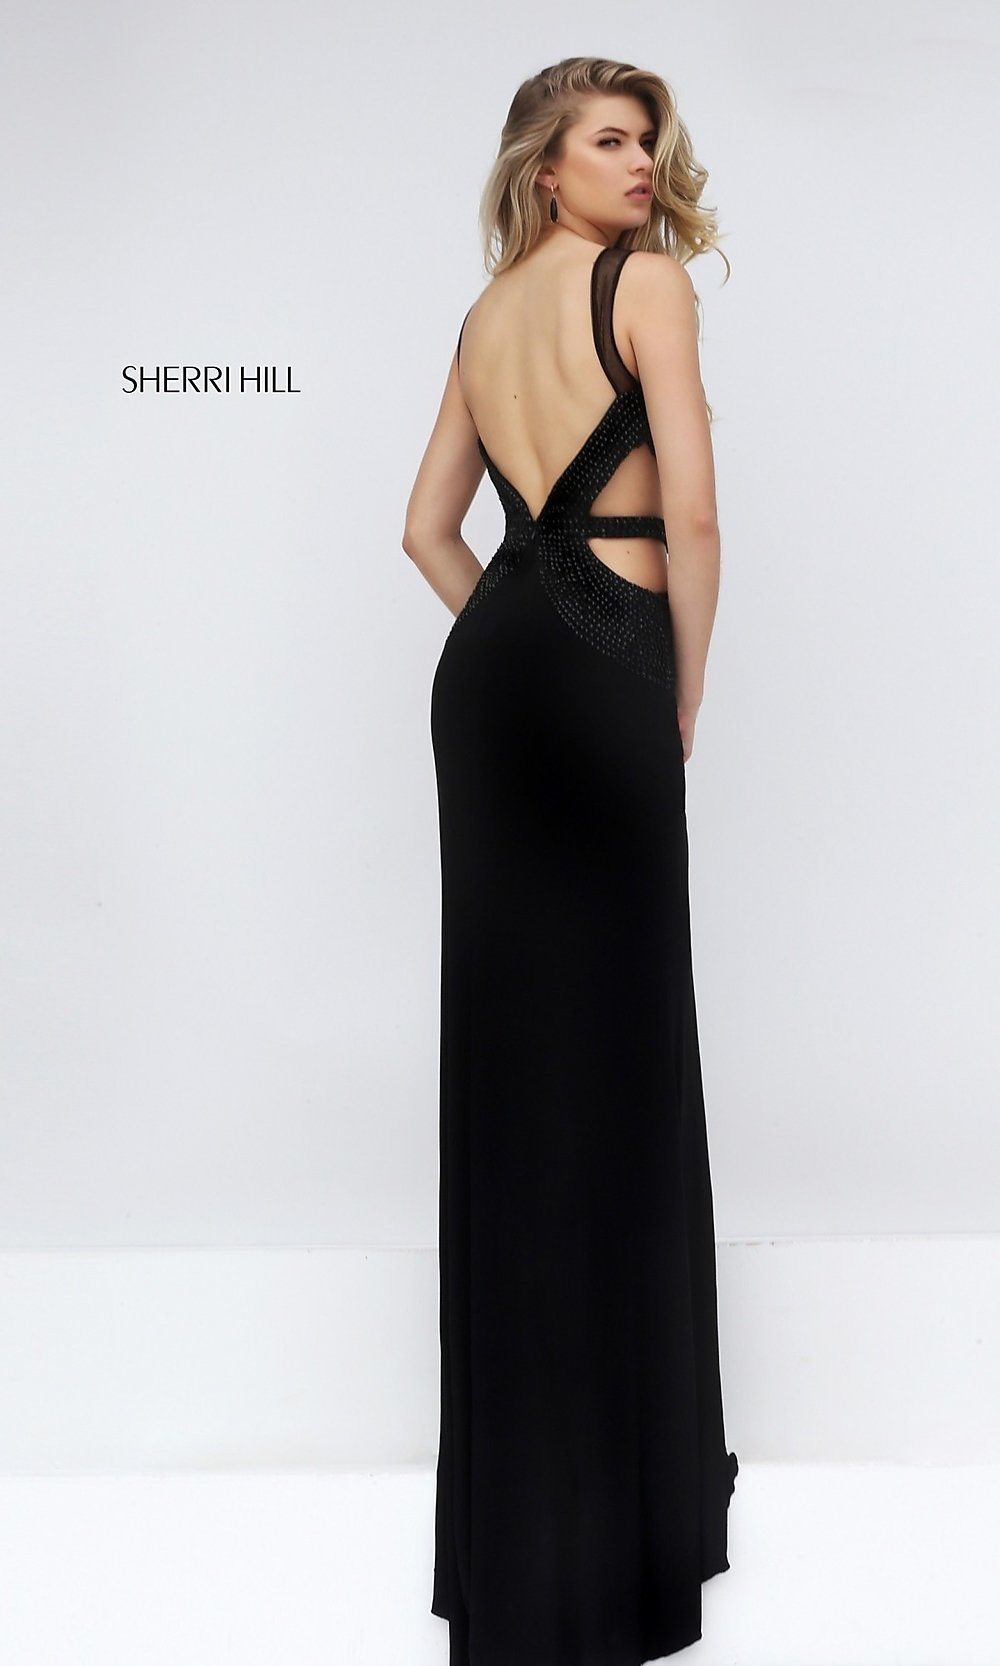 Sherri Hill Long Black Open Back Dress Promgirl